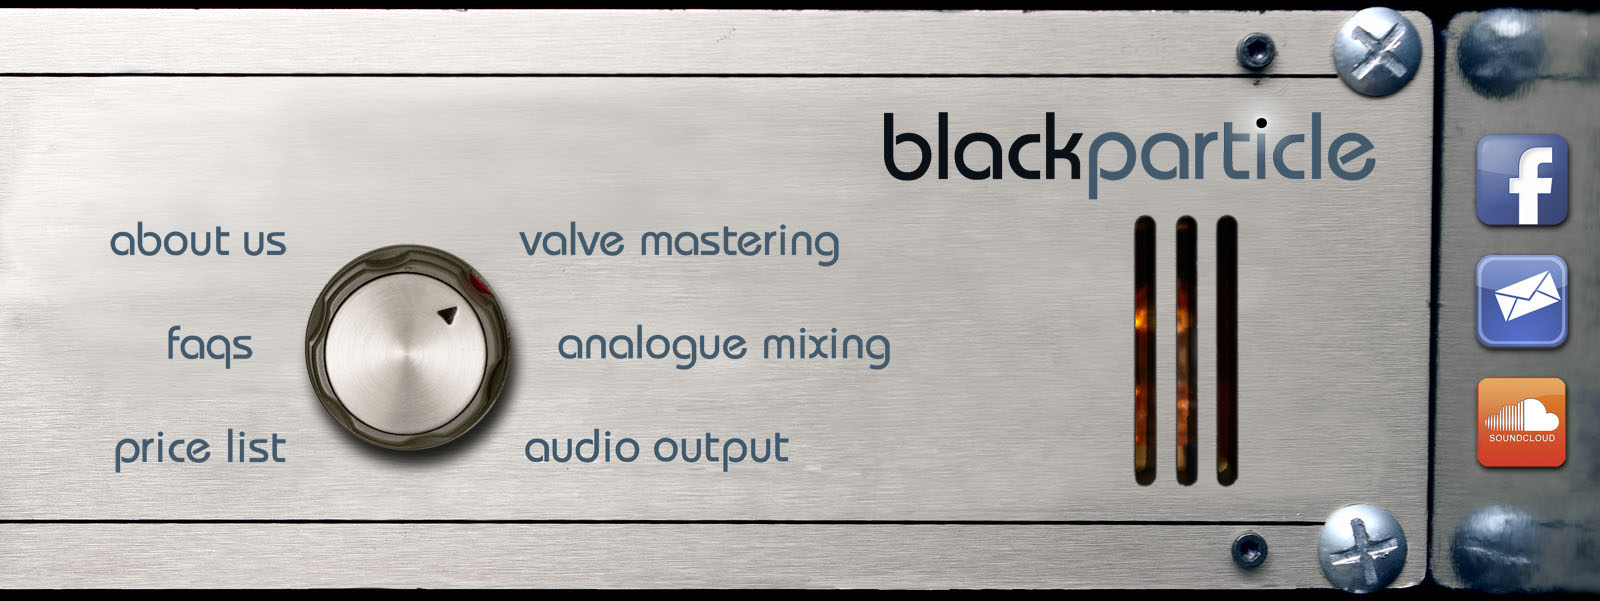 black particle - valve mastering